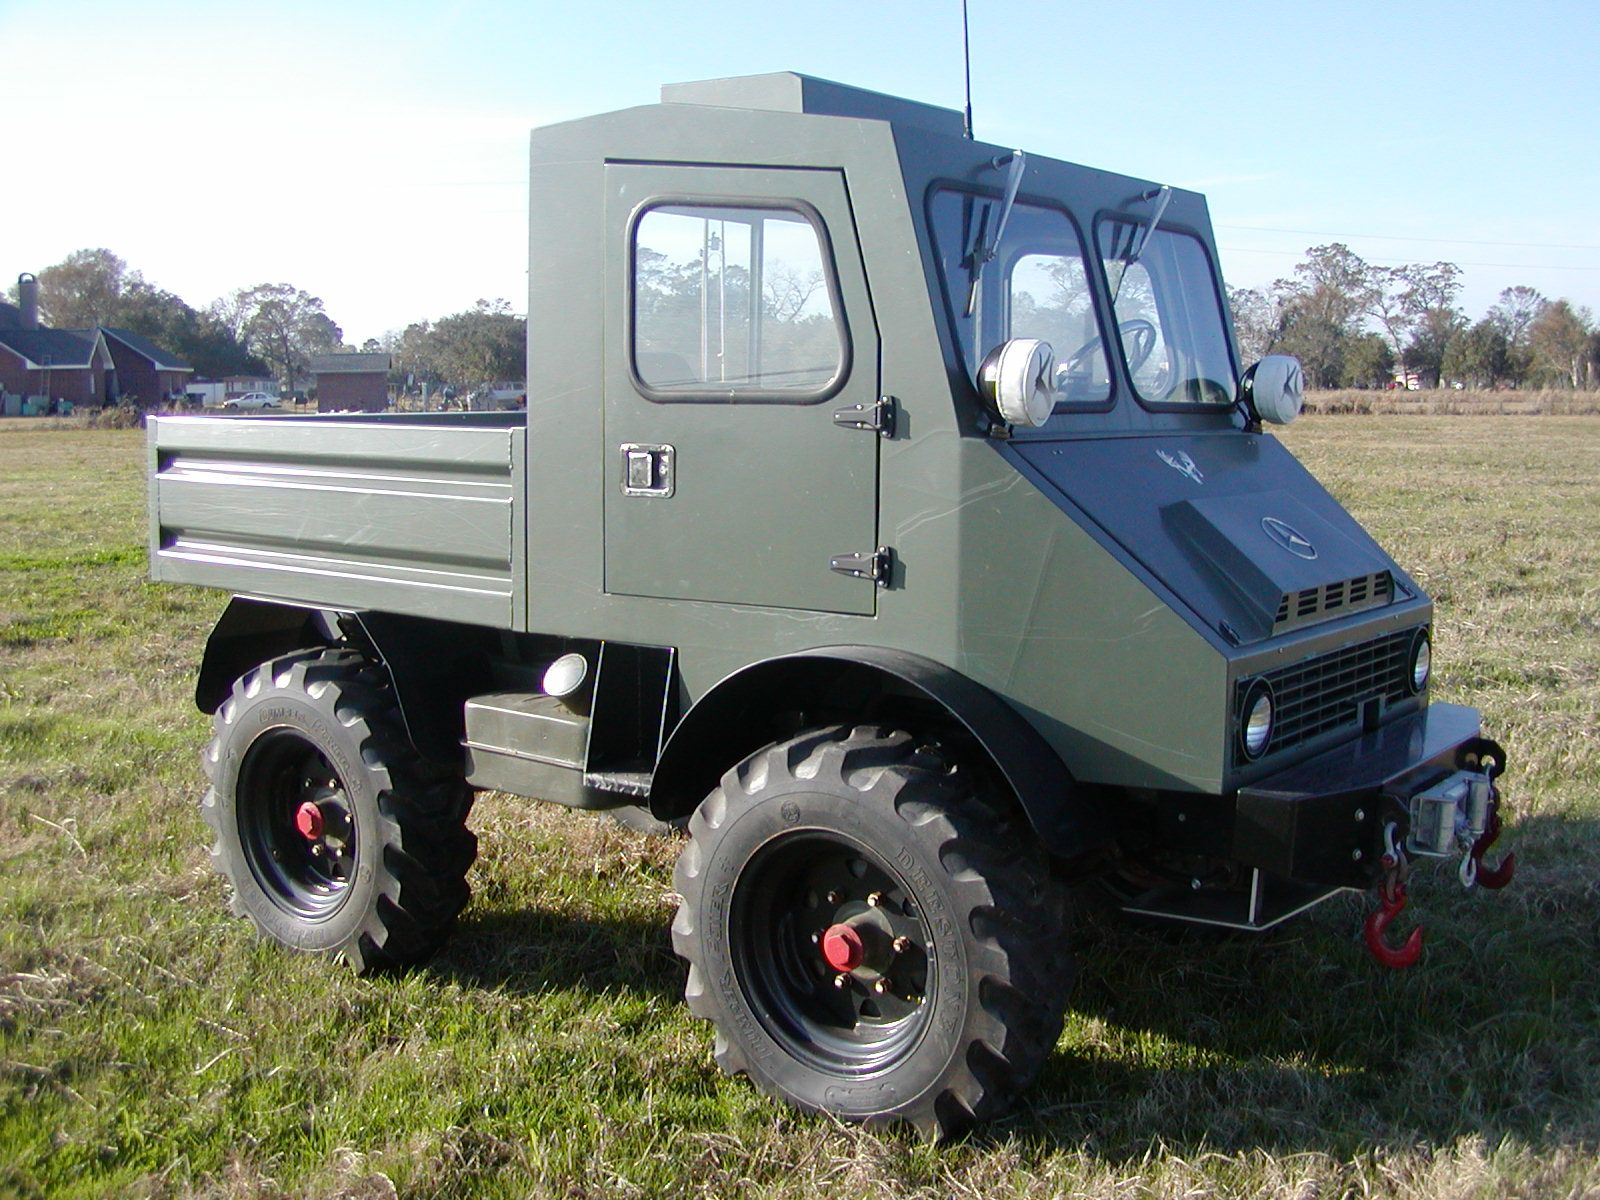 Texoma All Wheel Drive: Unimog Dealer for Texas and Oklahoma | Cars